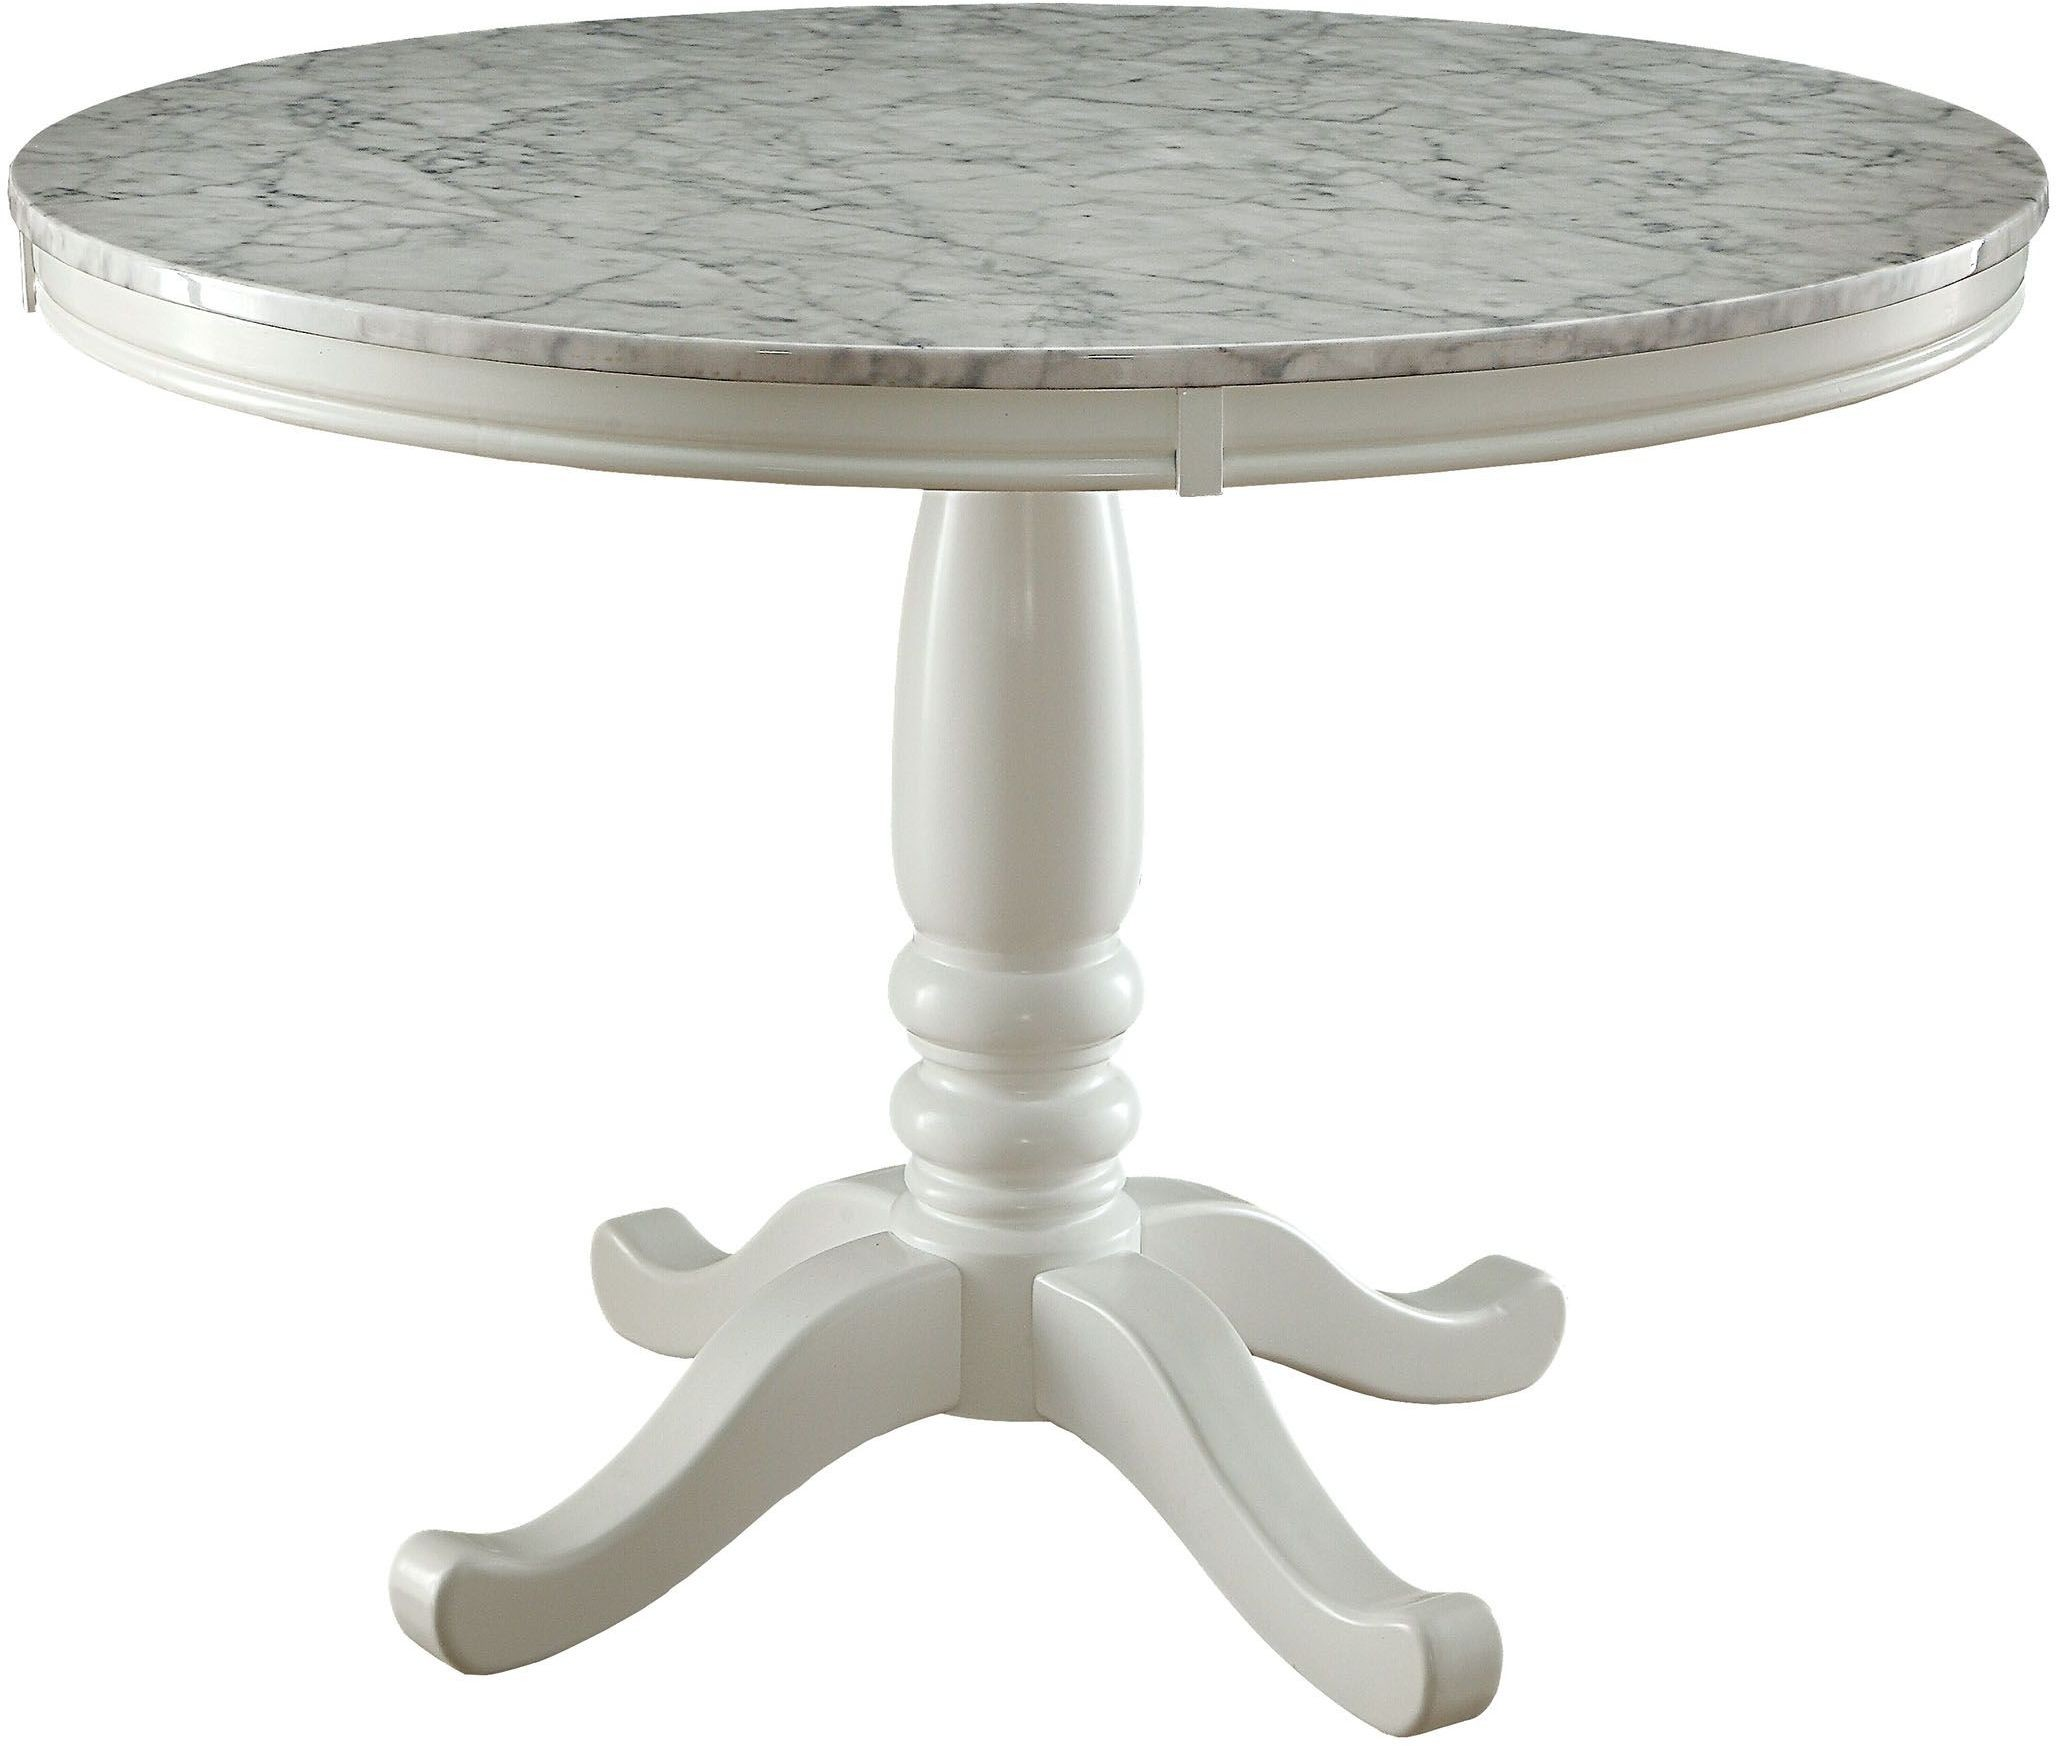 Round White Dining Tables: Penelope White Round Dining Table